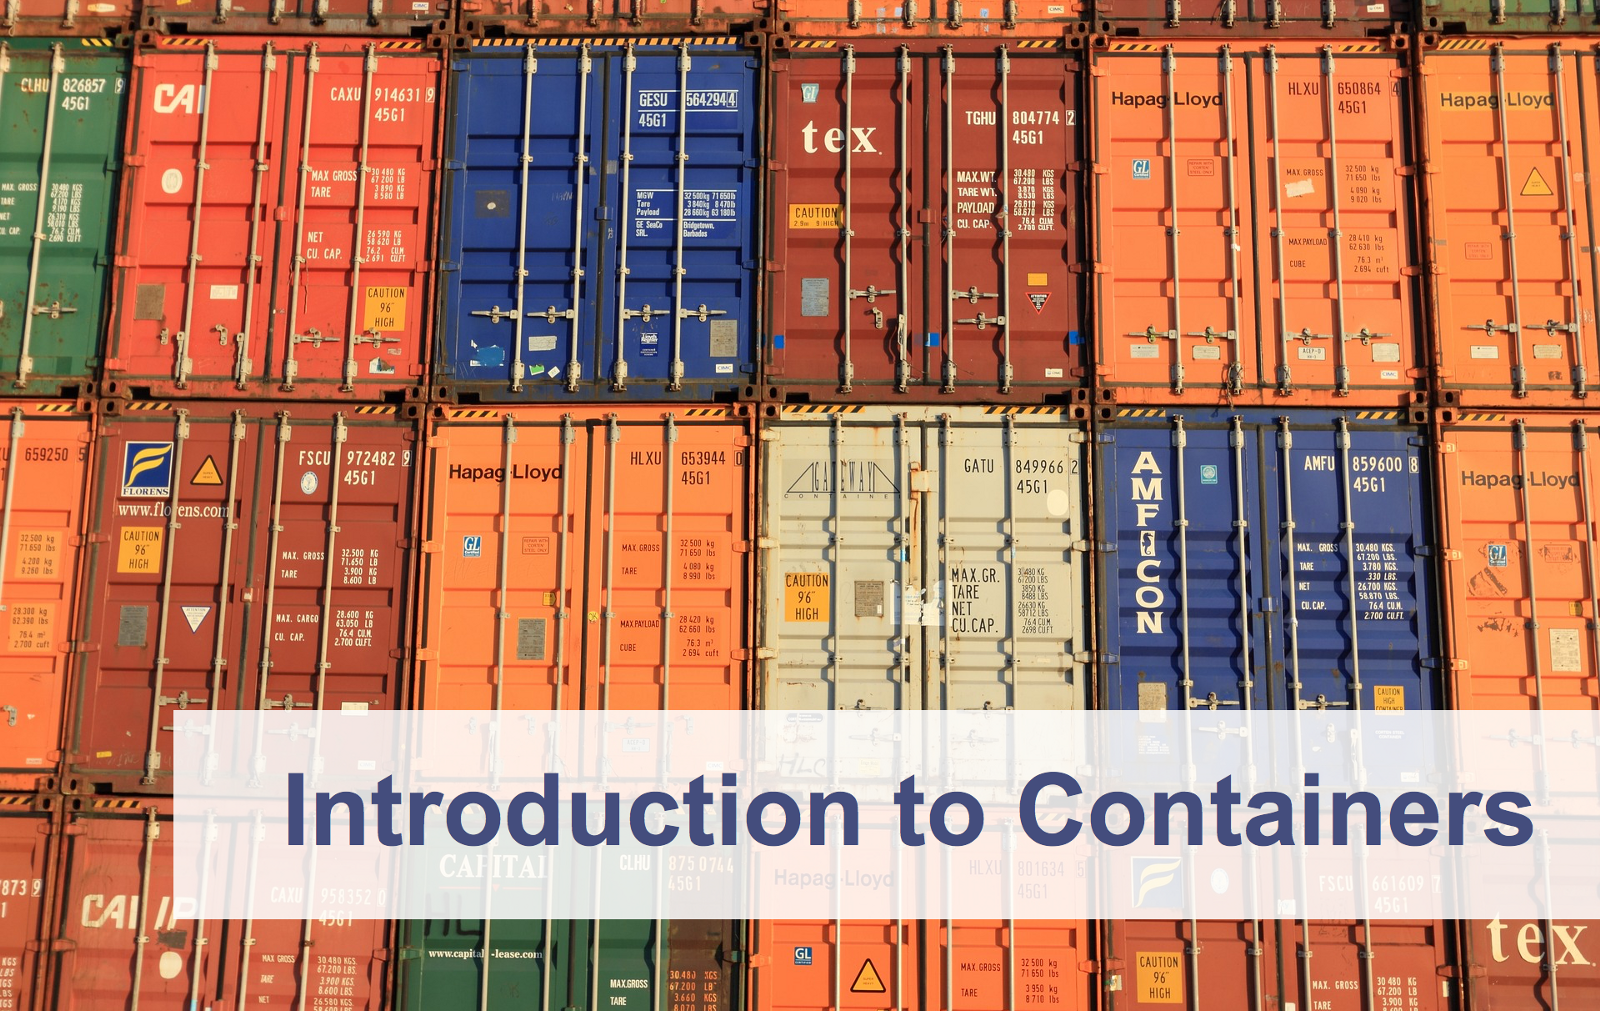 Application Container là gì?